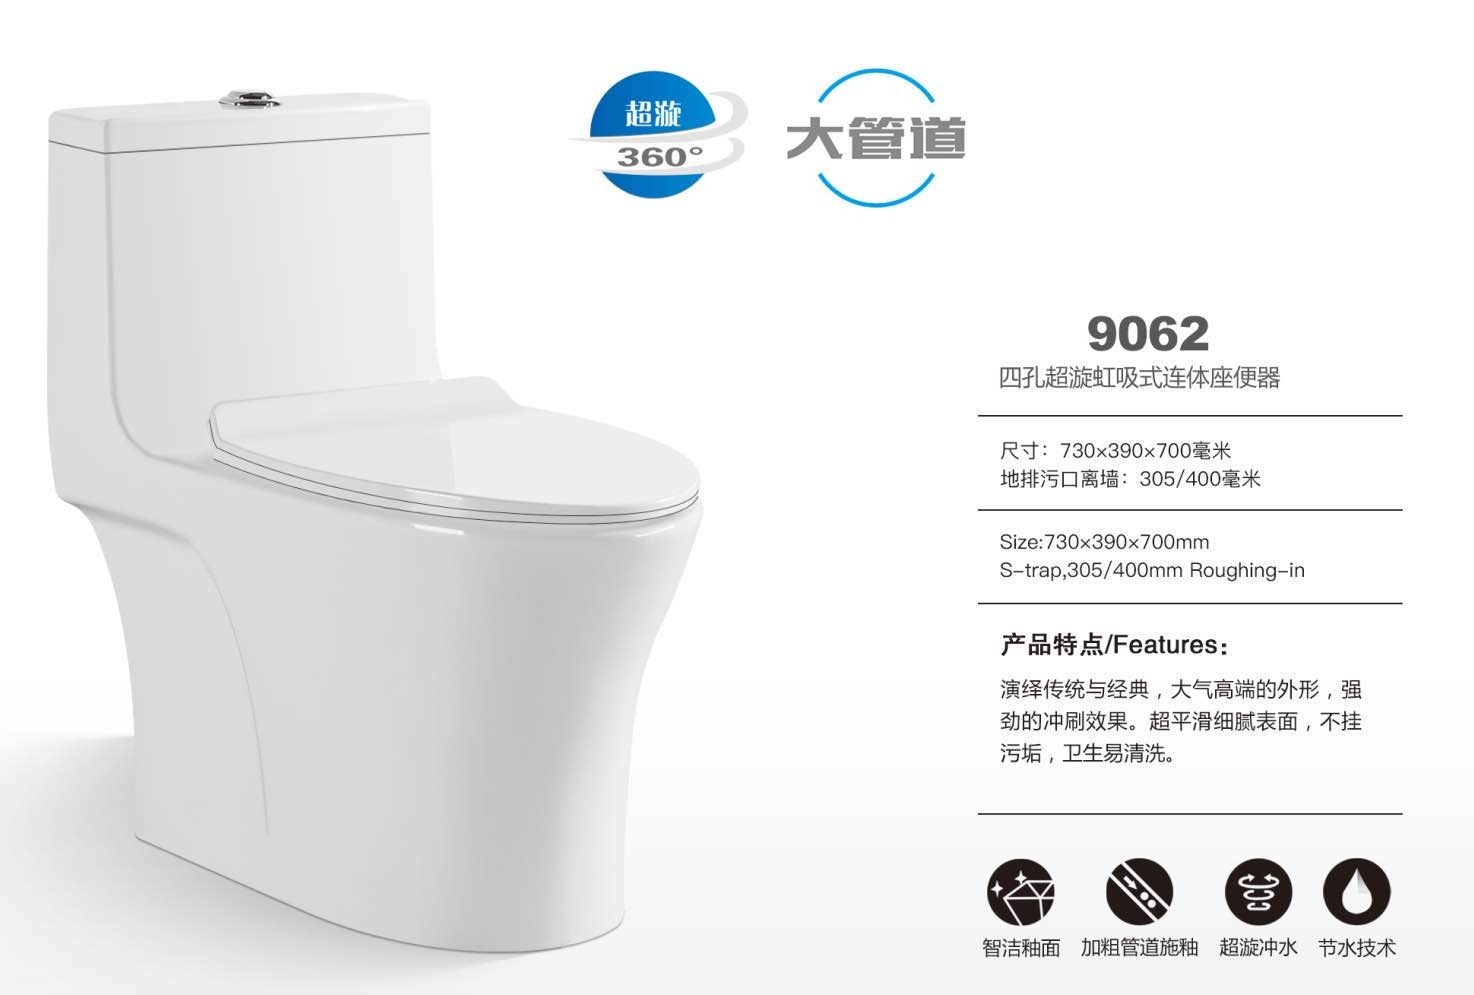 China New Arrival Bathroom Sanitary Ware Rimless One Piece Toilet For India Market China Bathroom Sanitary Ware Factory Direct Supply Toilet